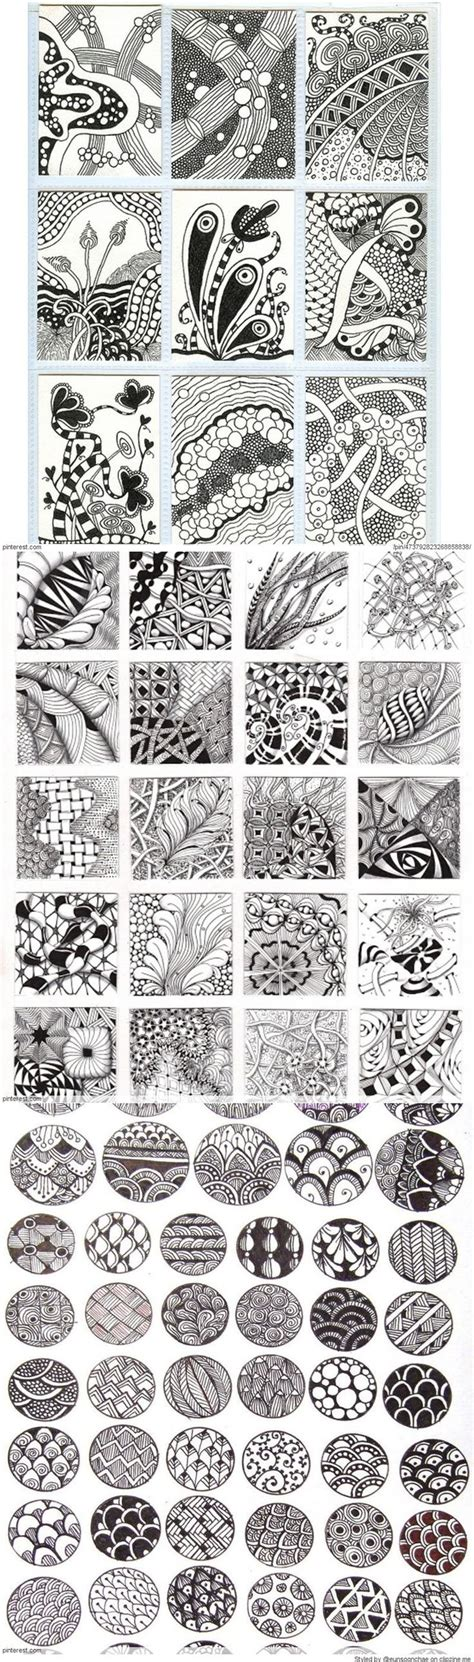 zentangle design zentangle patterns ideas be careful zentangle is naff